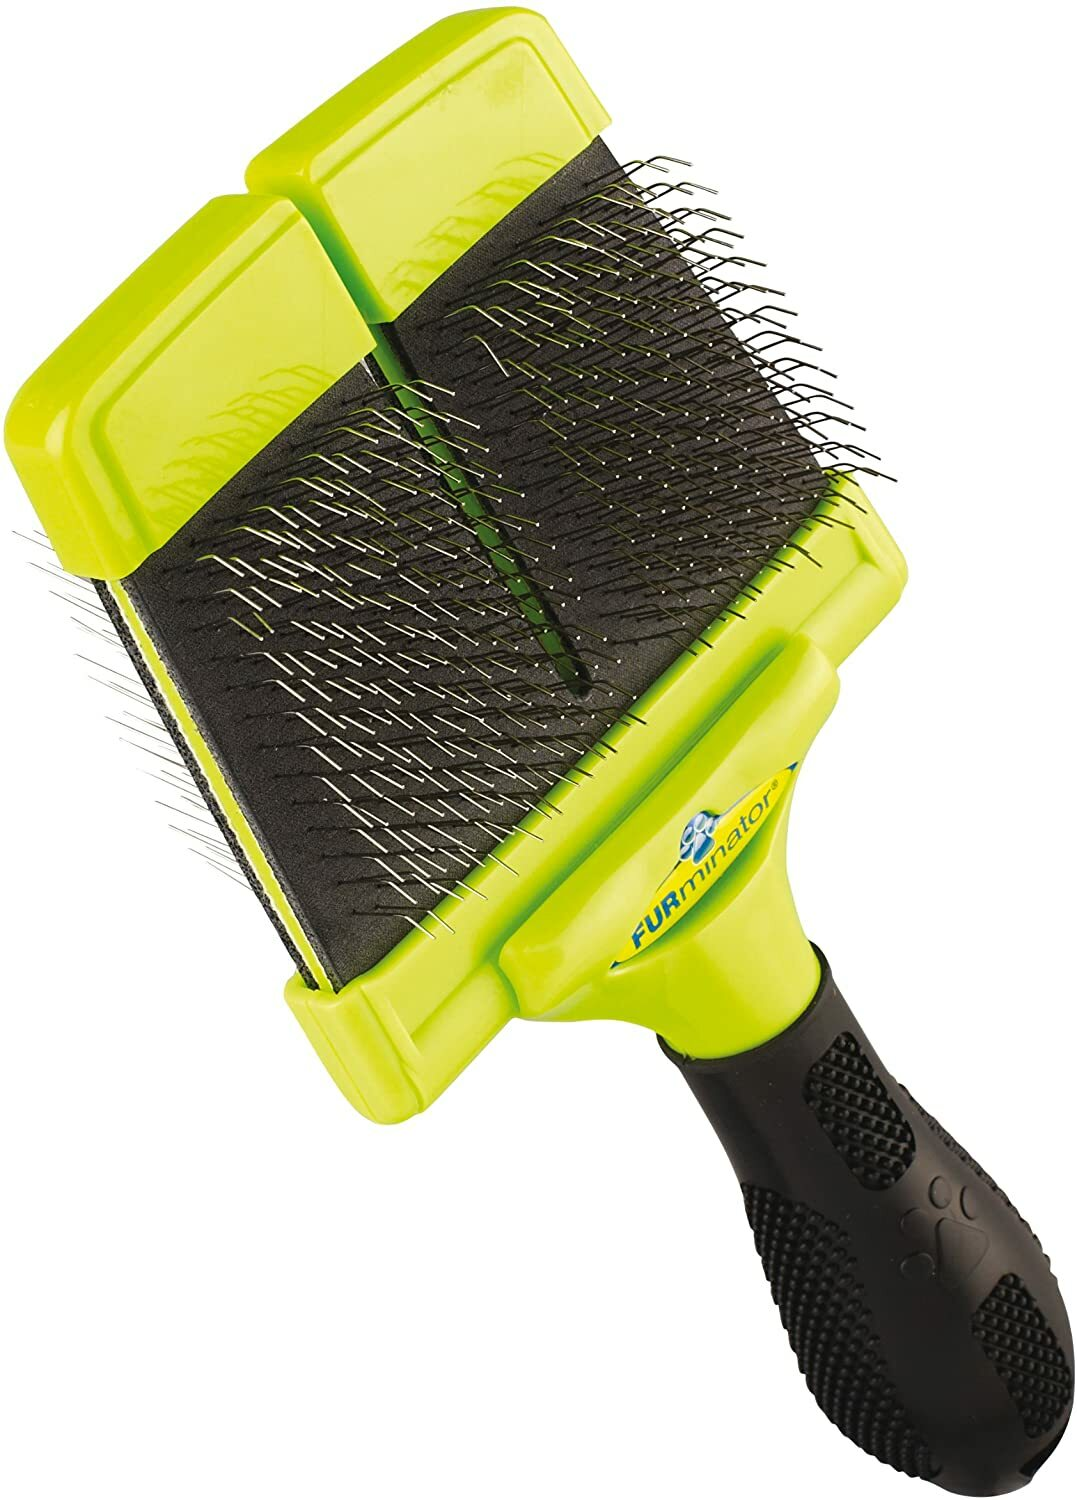 Escova Furminator Slicker Brush